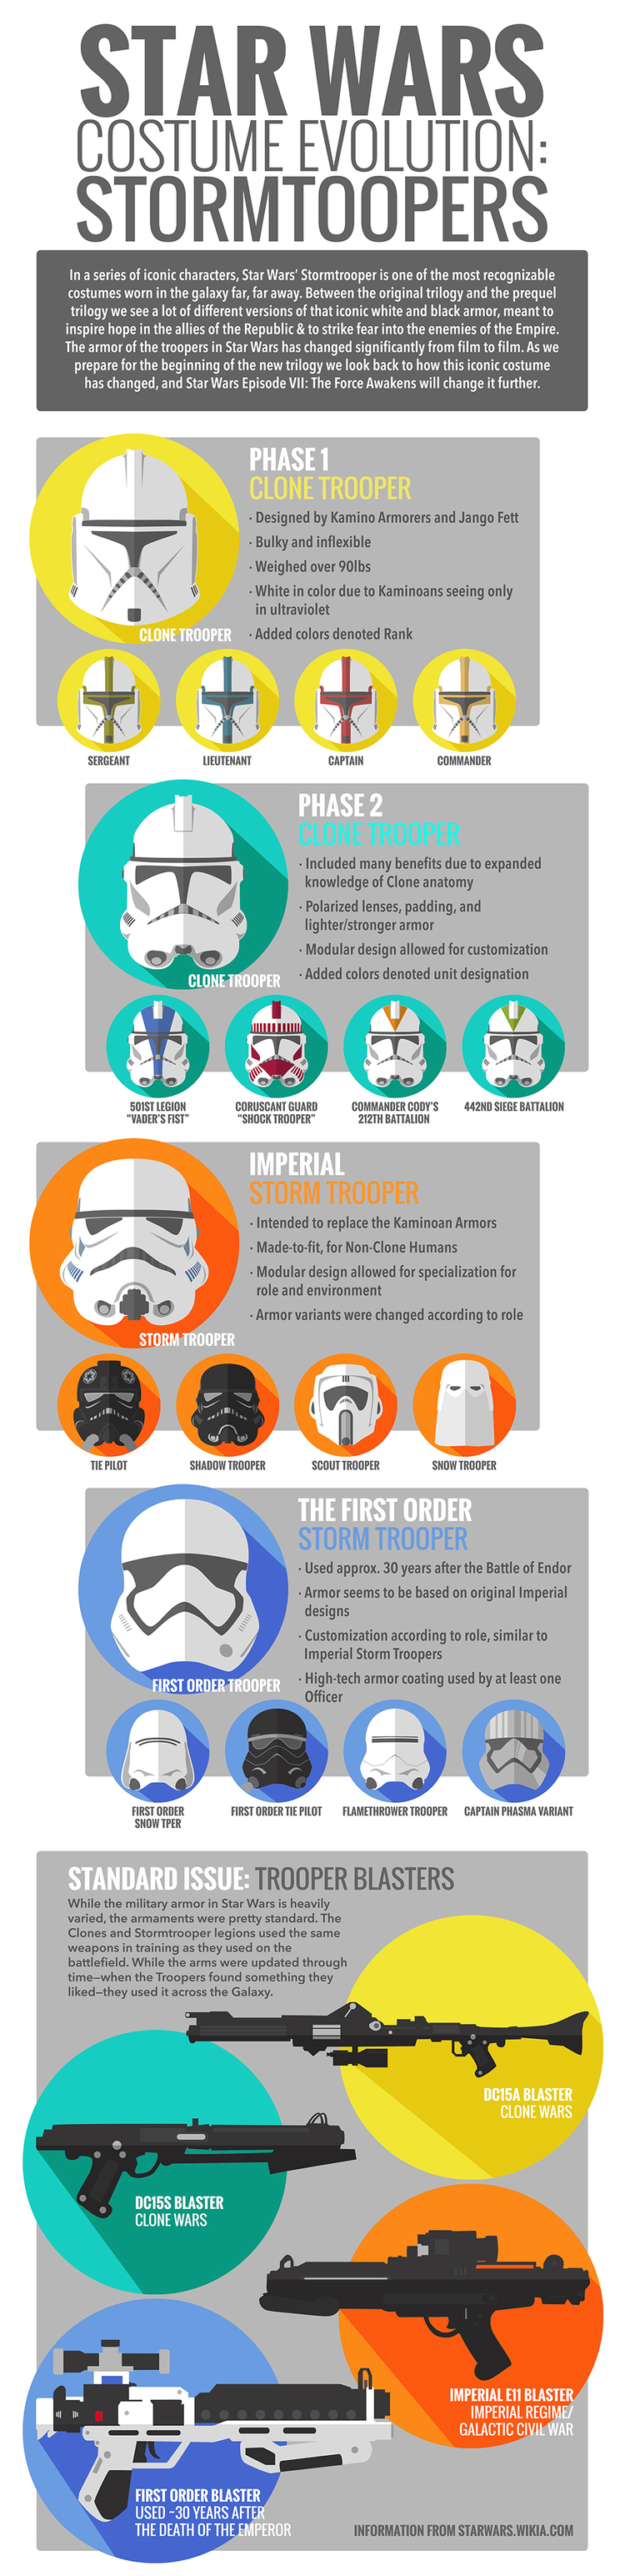 Star Wars Costume Evolution Infographic Stormtroopers